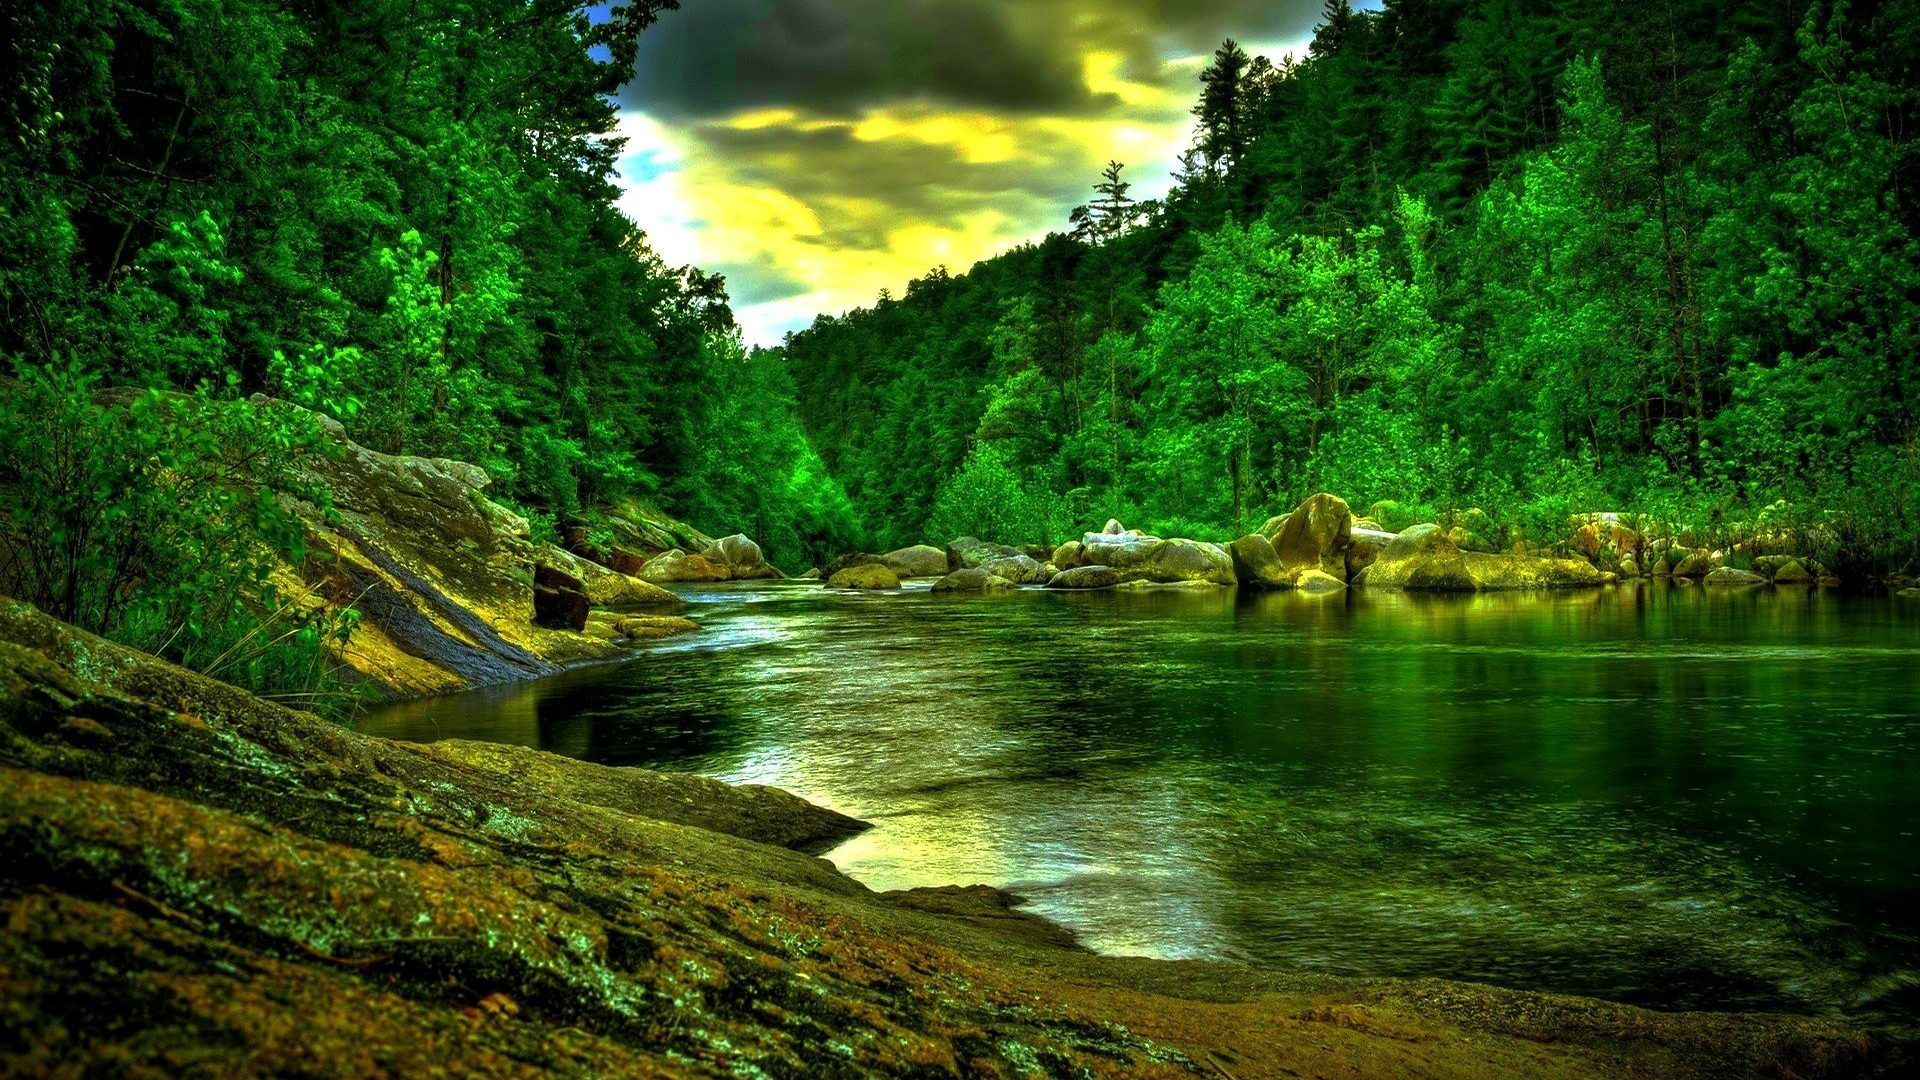 nature-amazon-pictures-wallpapers-desktop wallpaper hd full screen nature | http ...